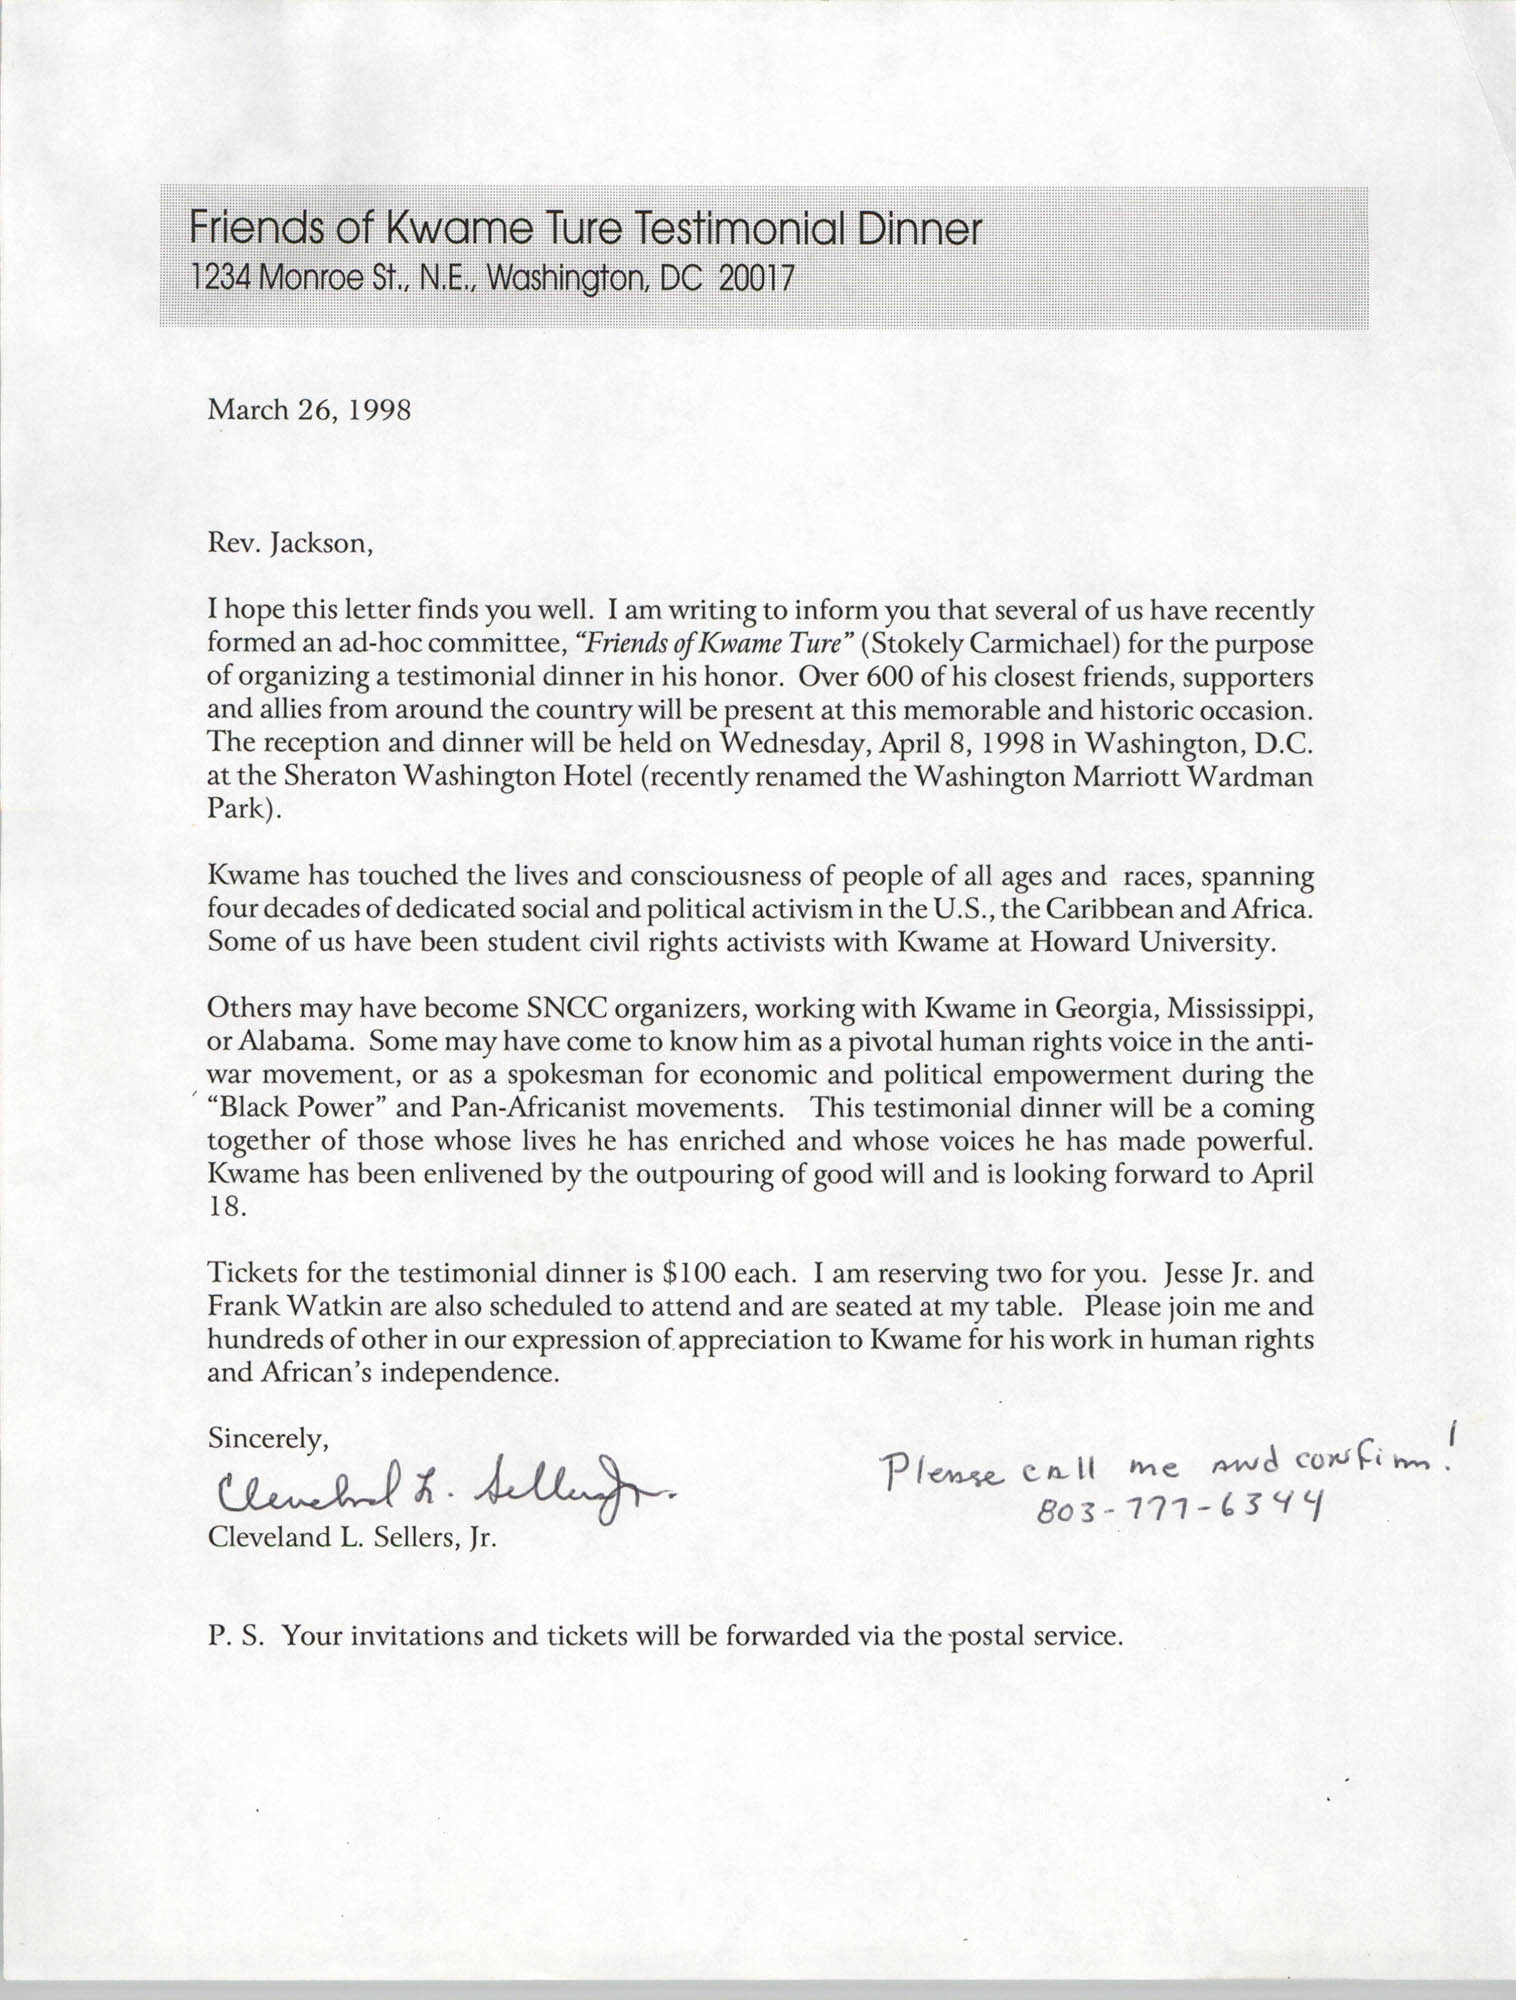 Letter from Cleveland Sellers to Jesse Jackson, March 26, 1998